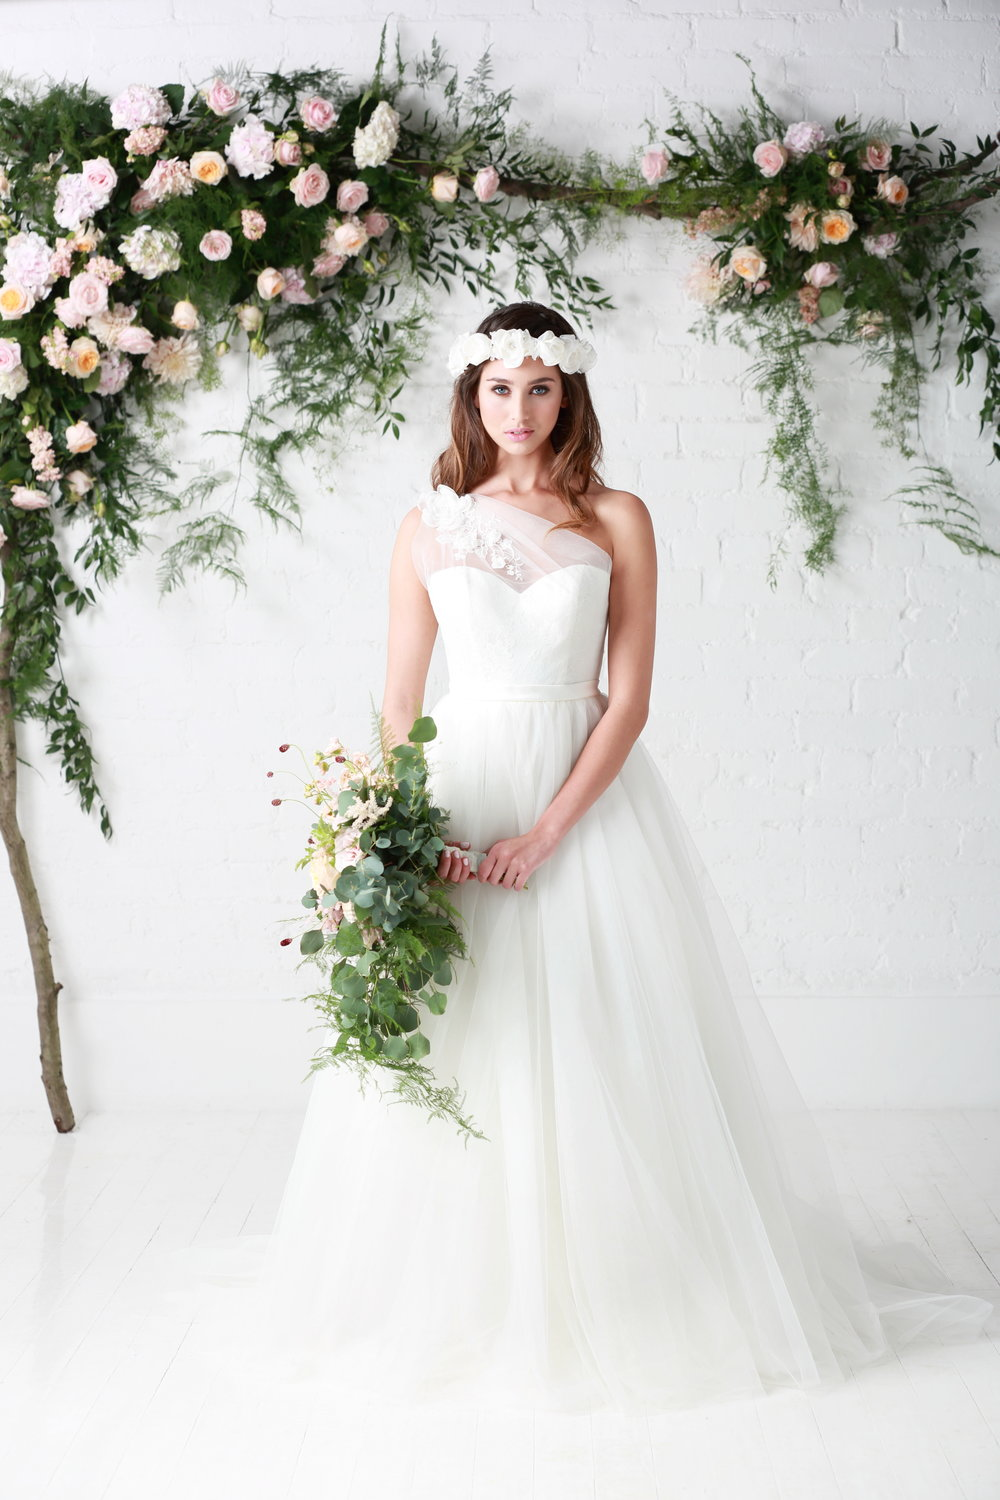 Charlotte Balbier 'Rosemary'   Beautiful Tulle Ballgown with elegant one shoulder and floral embellishment detail.  Bridal size 14  Was - £1650 Now - £825